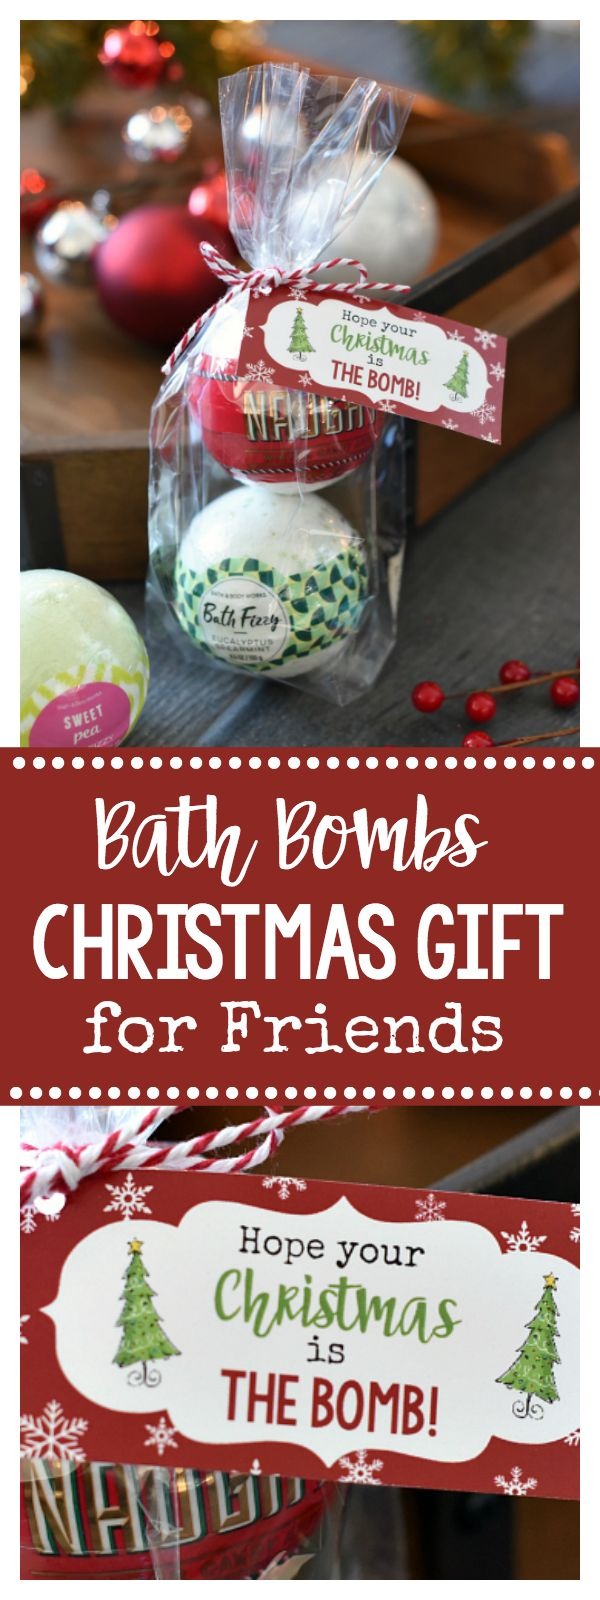 Christmas Bath Bombs Gift Idea for Friends – Fun-Squared